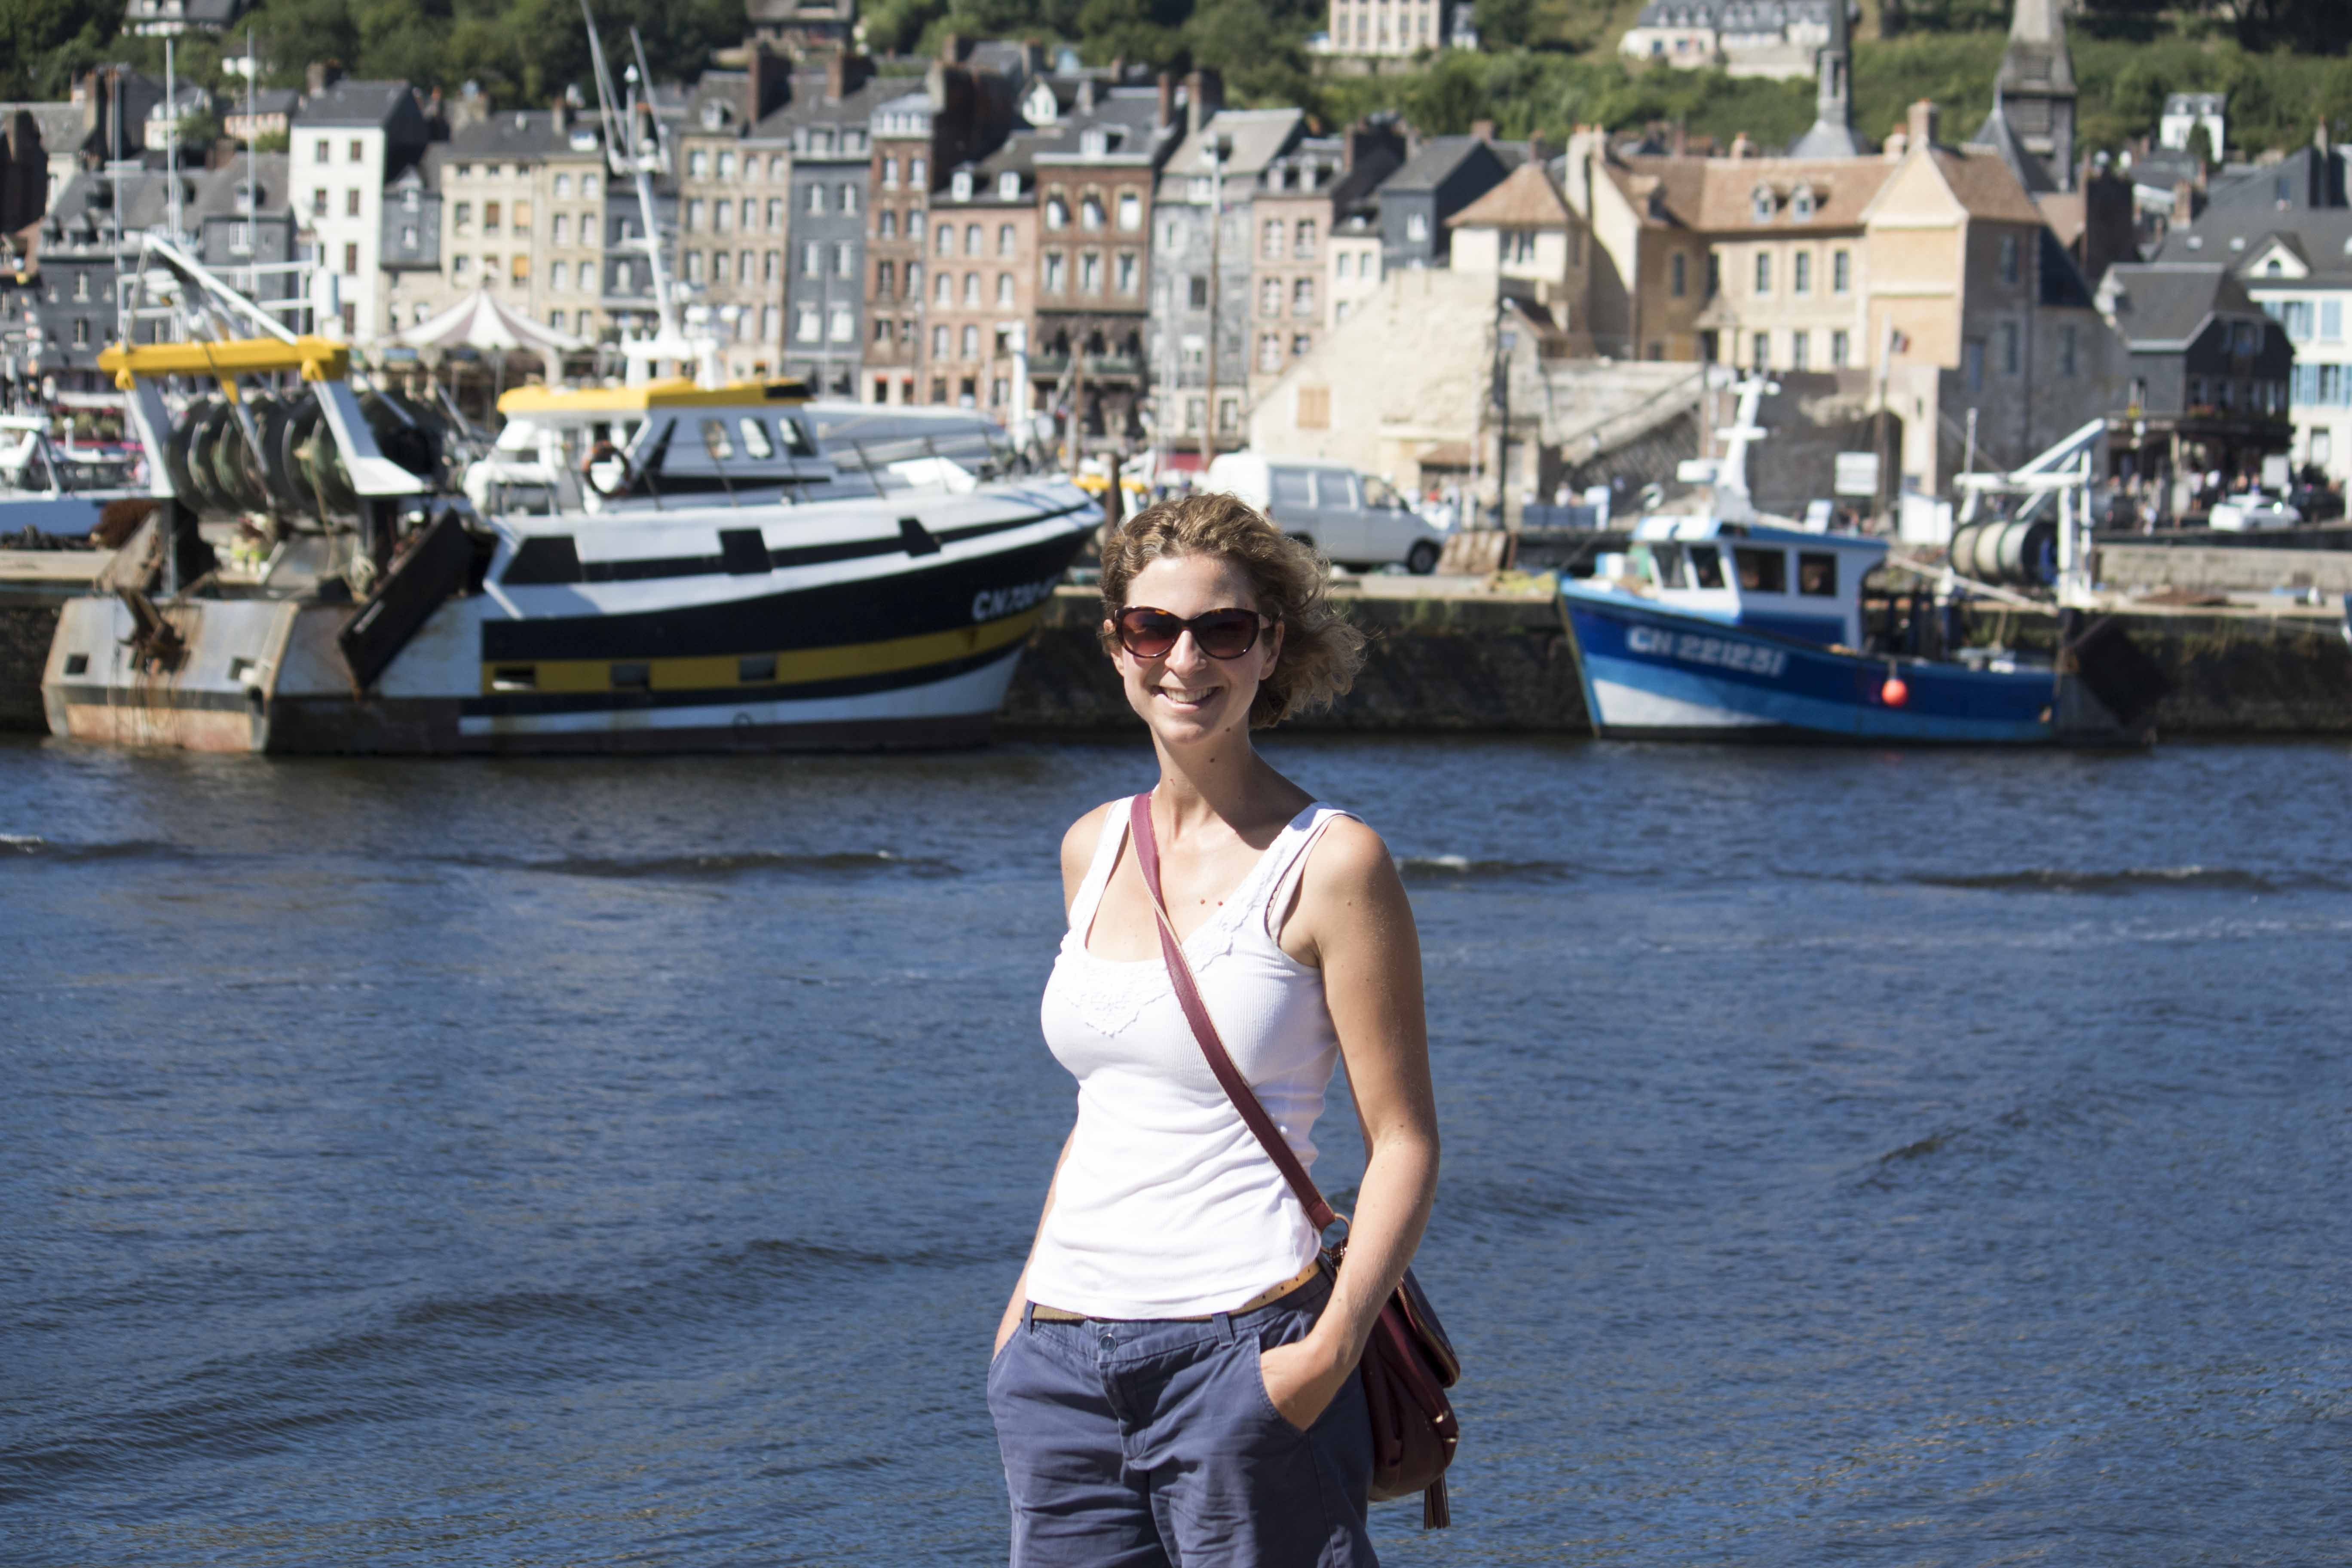 Soaking up the sun in Honfleur